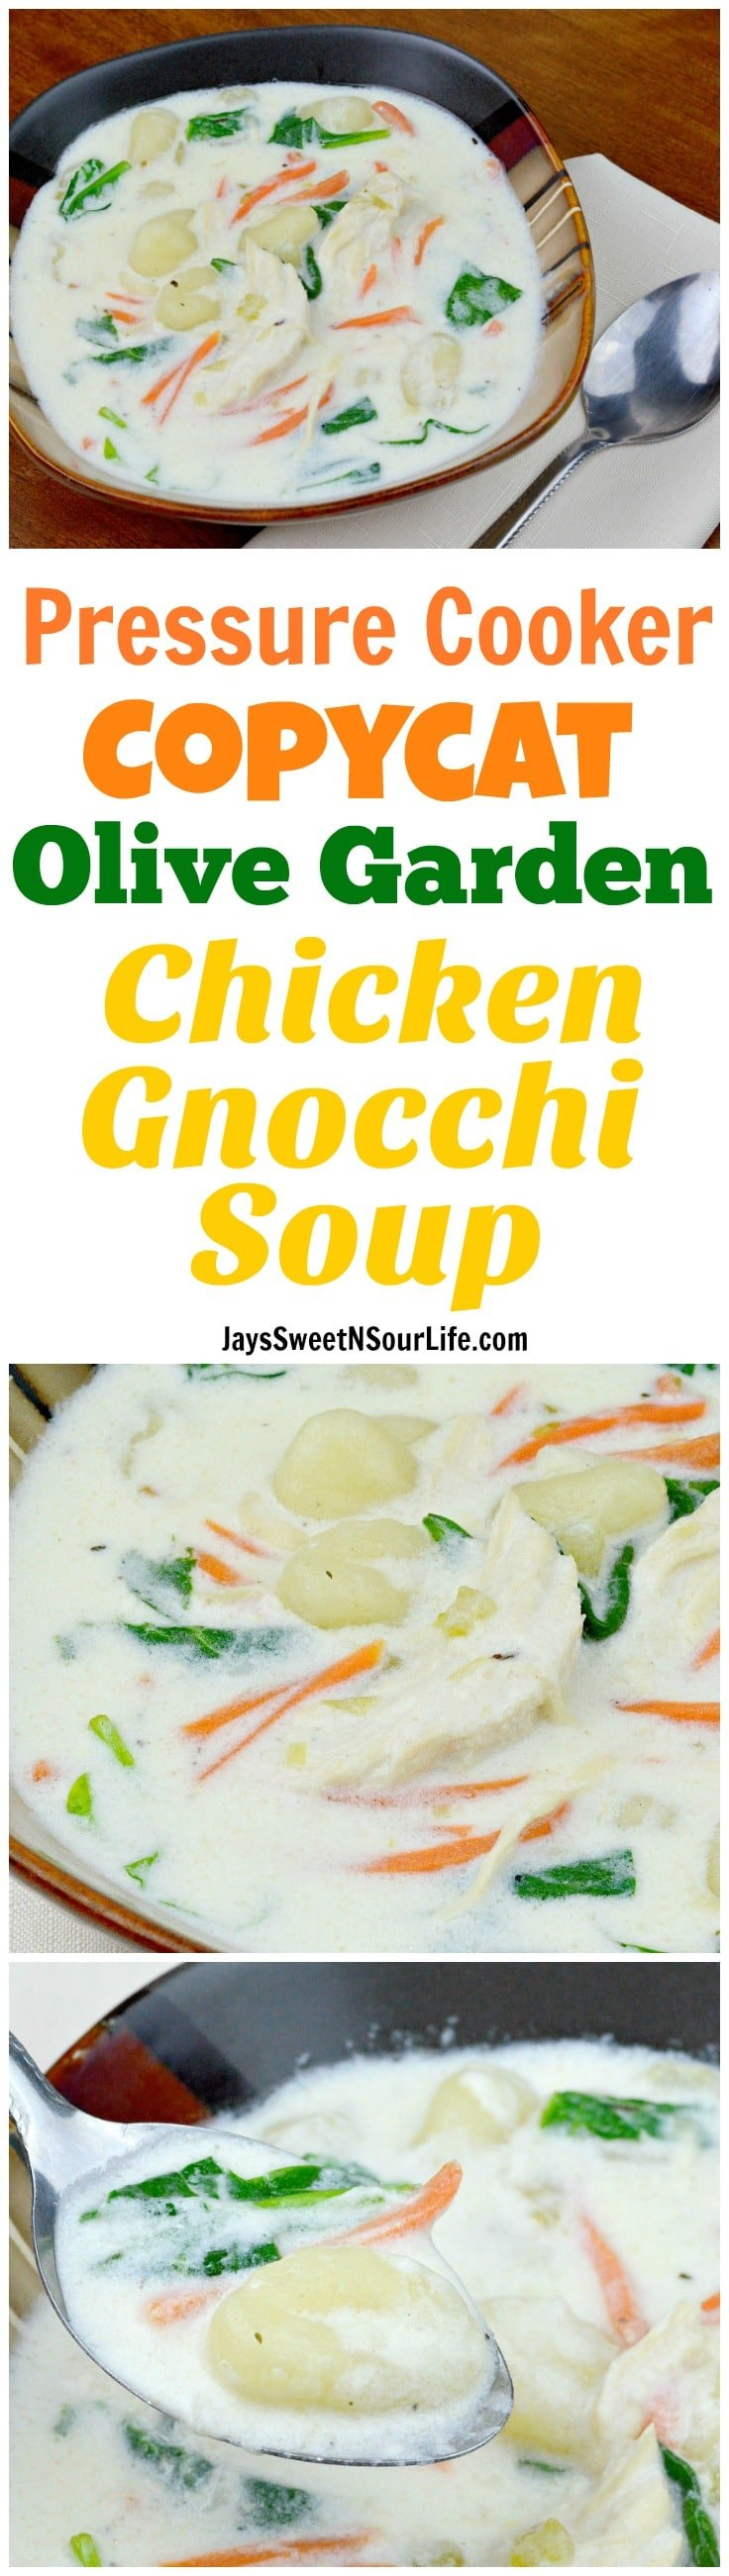 Pressure Cooker Copycat Olive Garden Chicken Gnocchi Soup. Bring the restaurant home with my Instant Pot Copycat Olive Garden Chicken Gnocchi Soup. Better than the restaurant, make this deliciously easy creamy soup recipe goes perfectly with a fresh-baked breadstick.